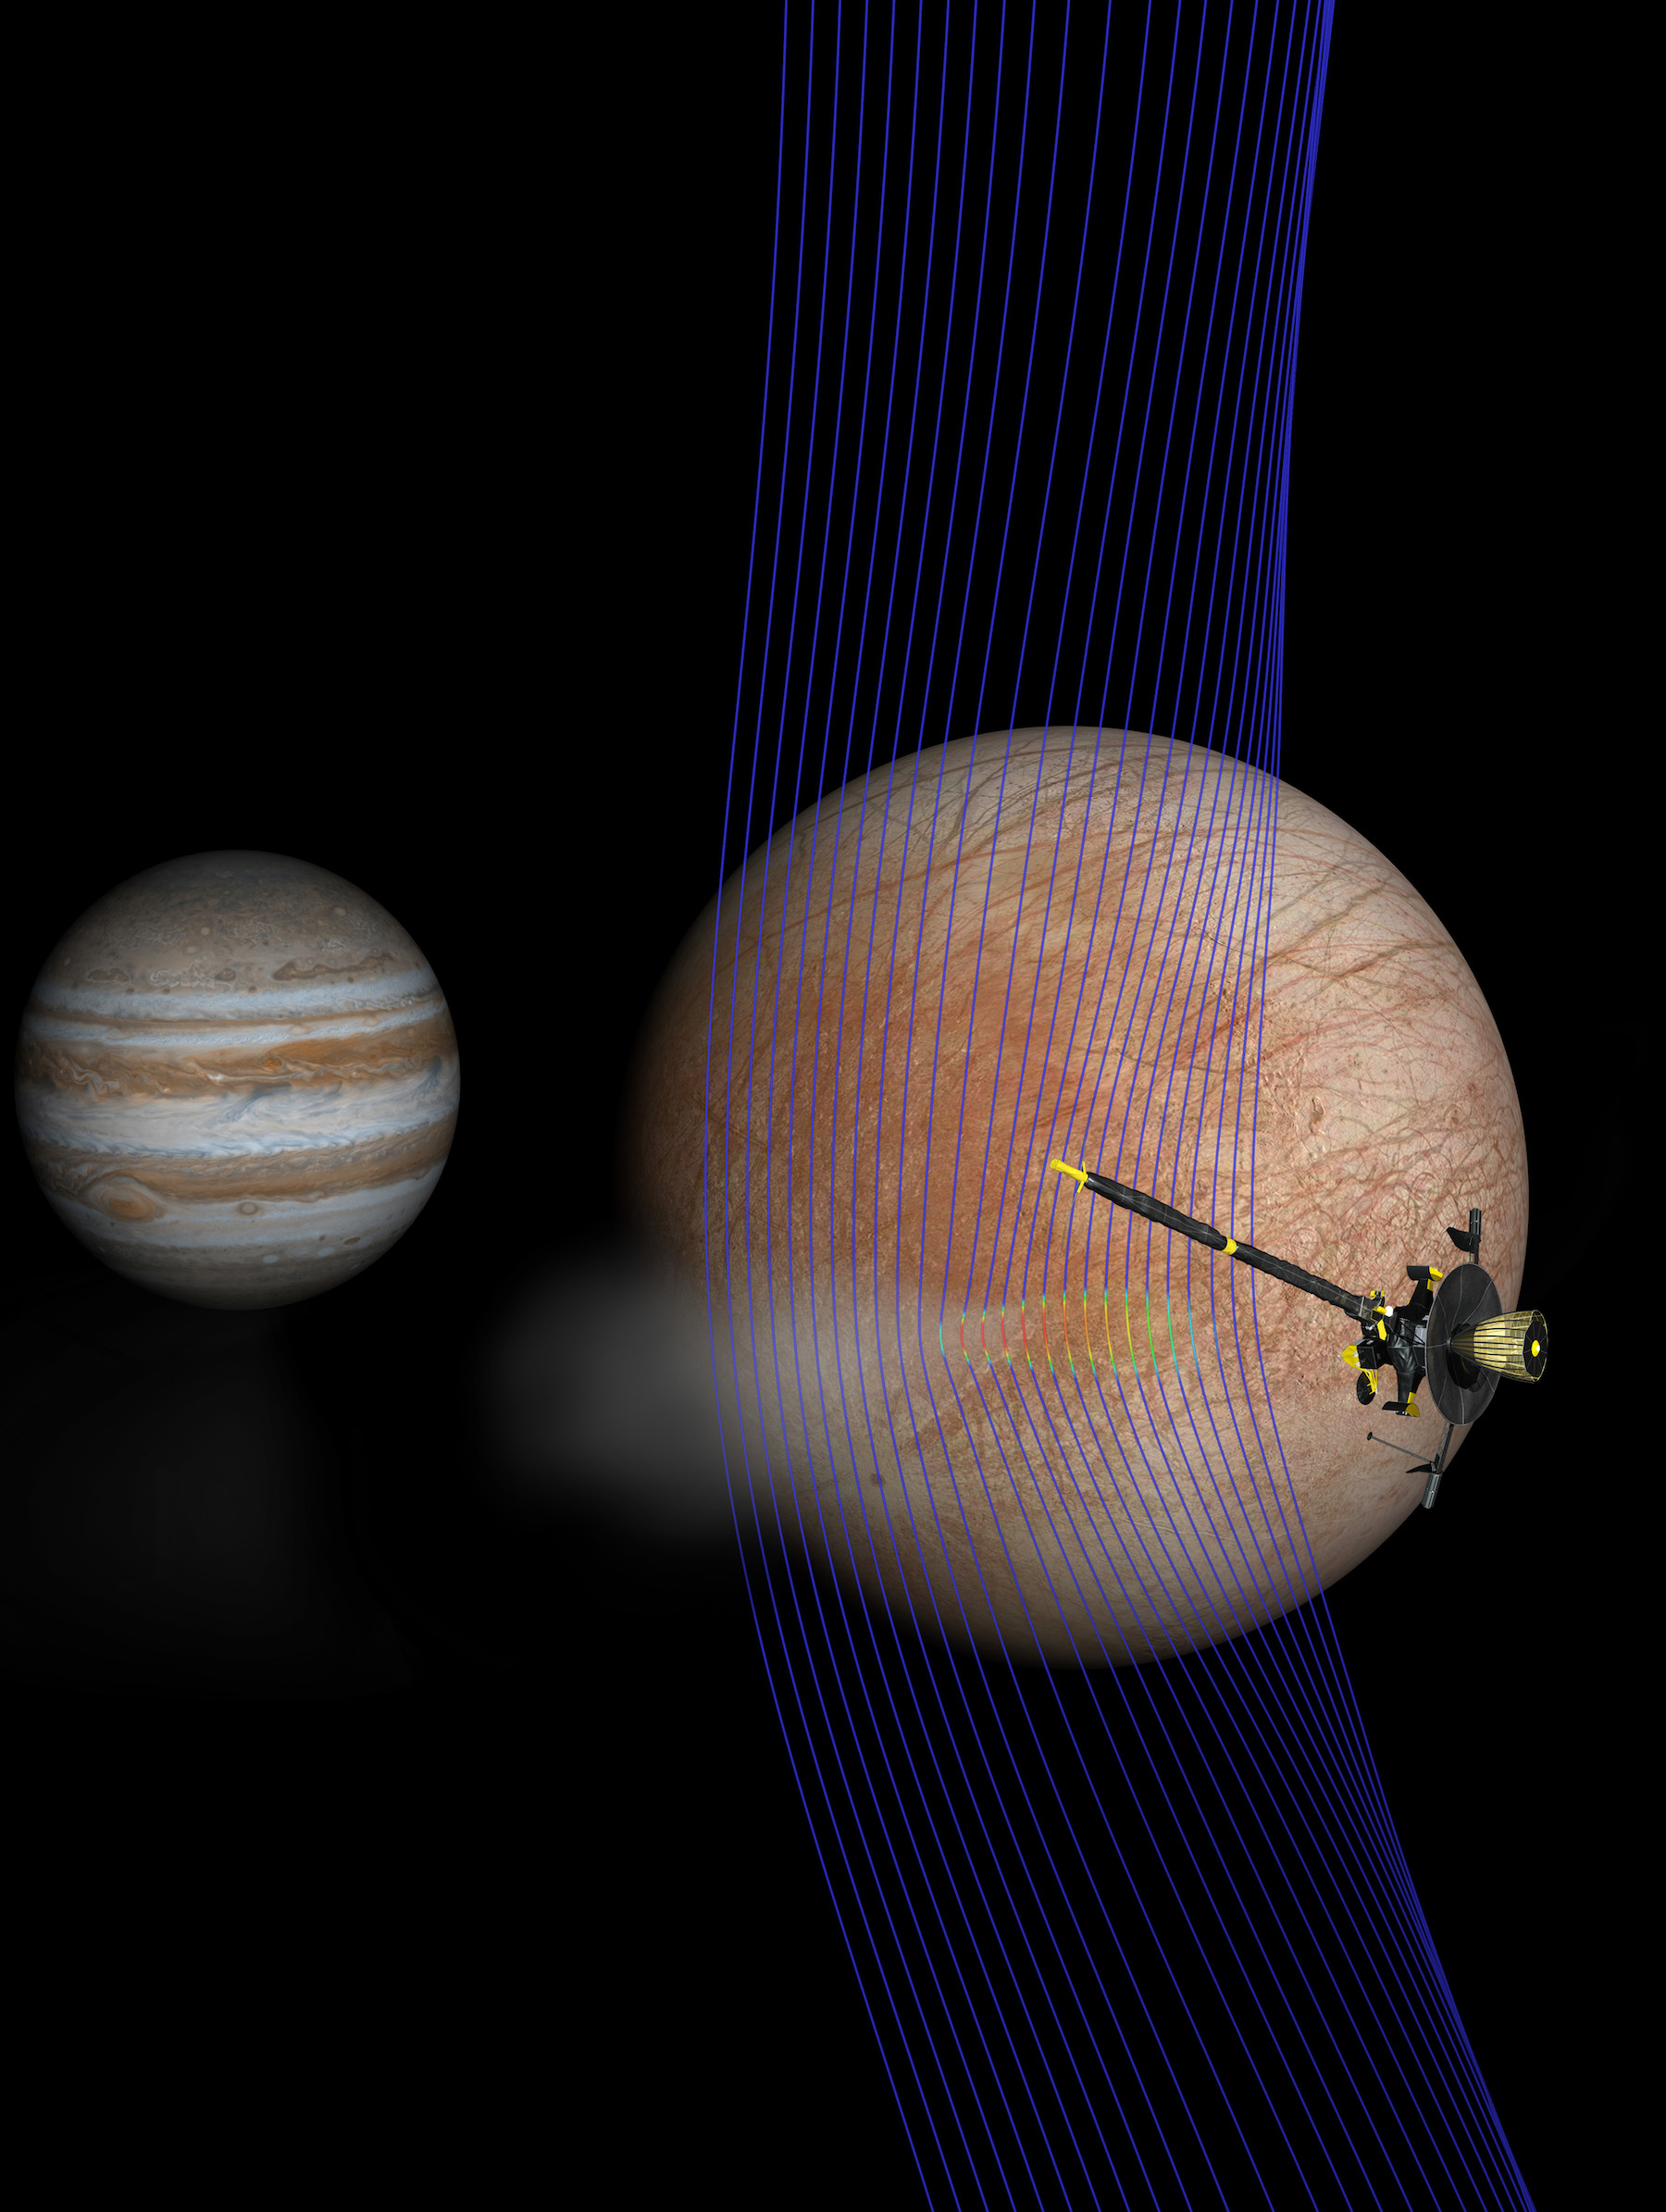 illustration of spacecraft at europa with jupiter in background